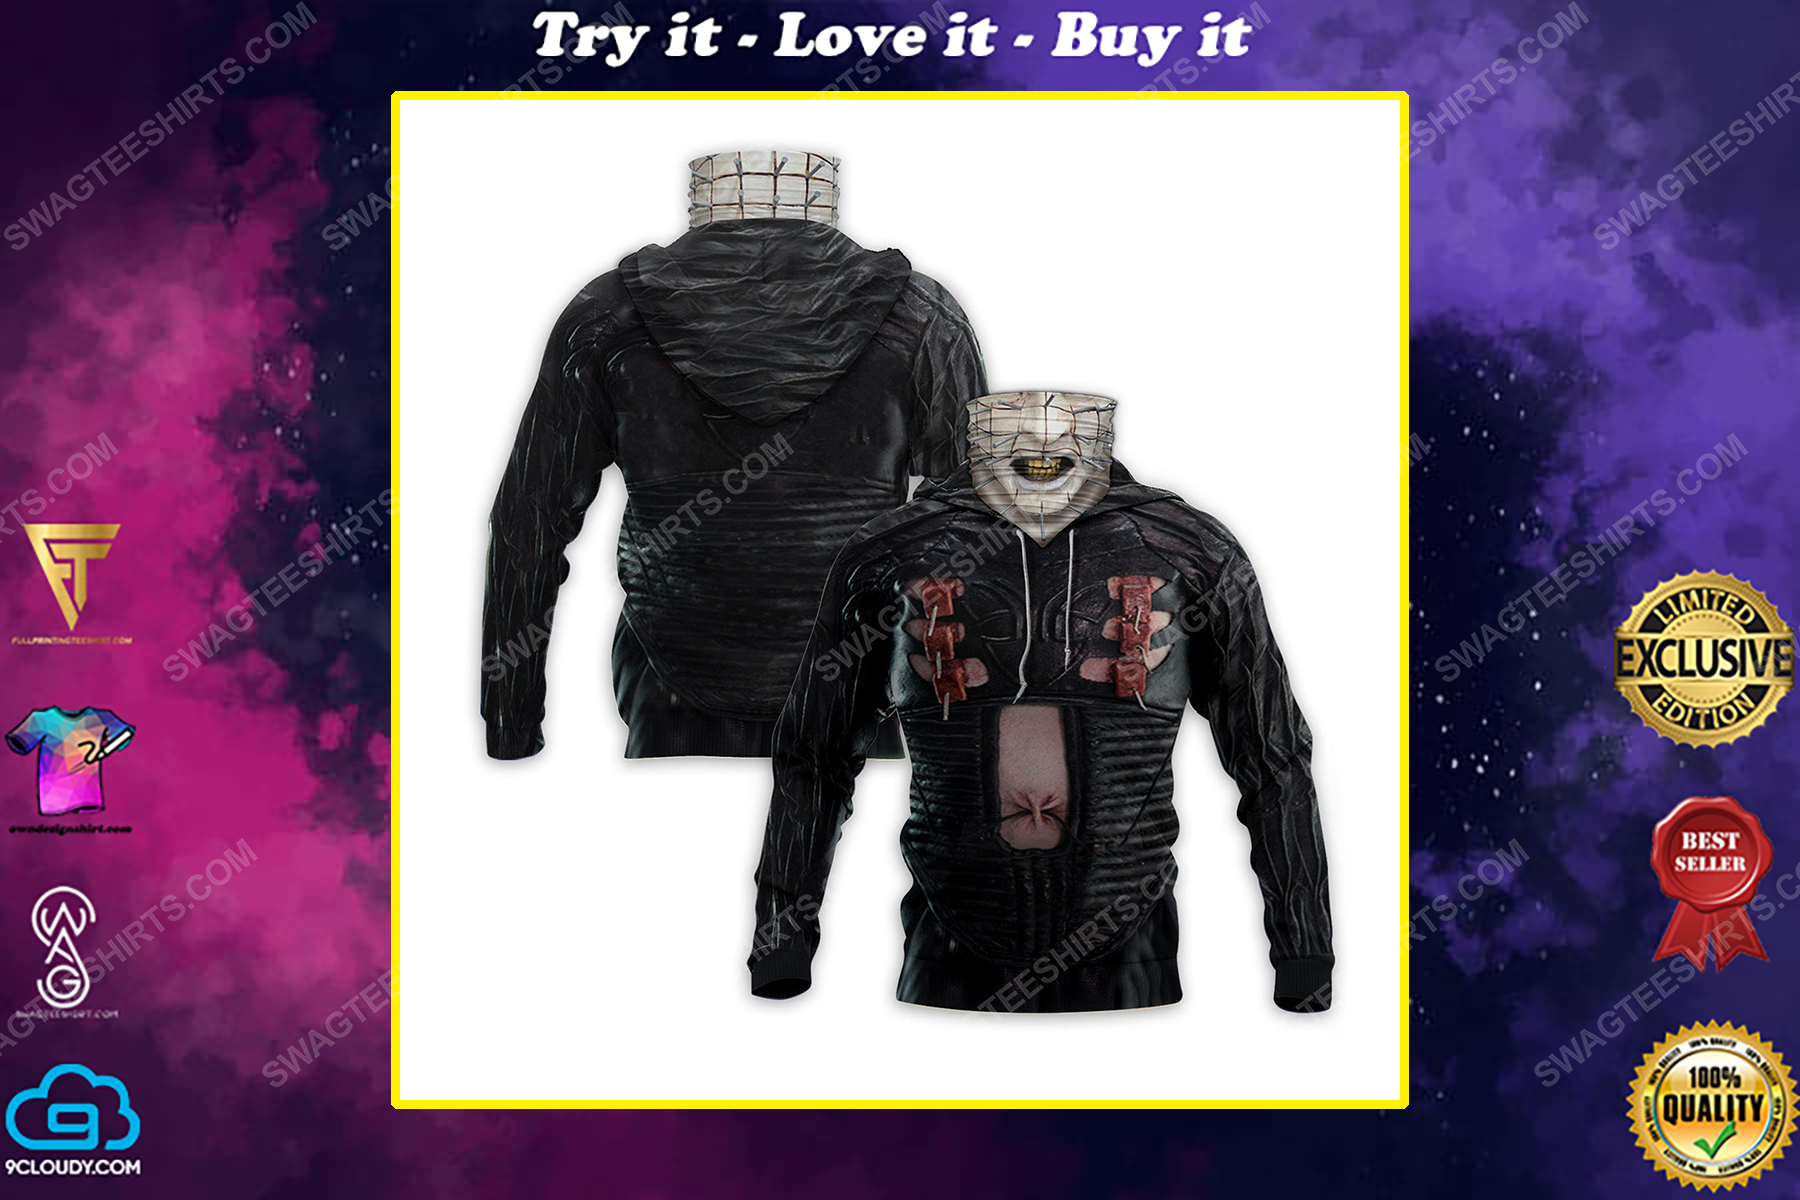 Pinhead the hell priest for halloween full print mask hoodie